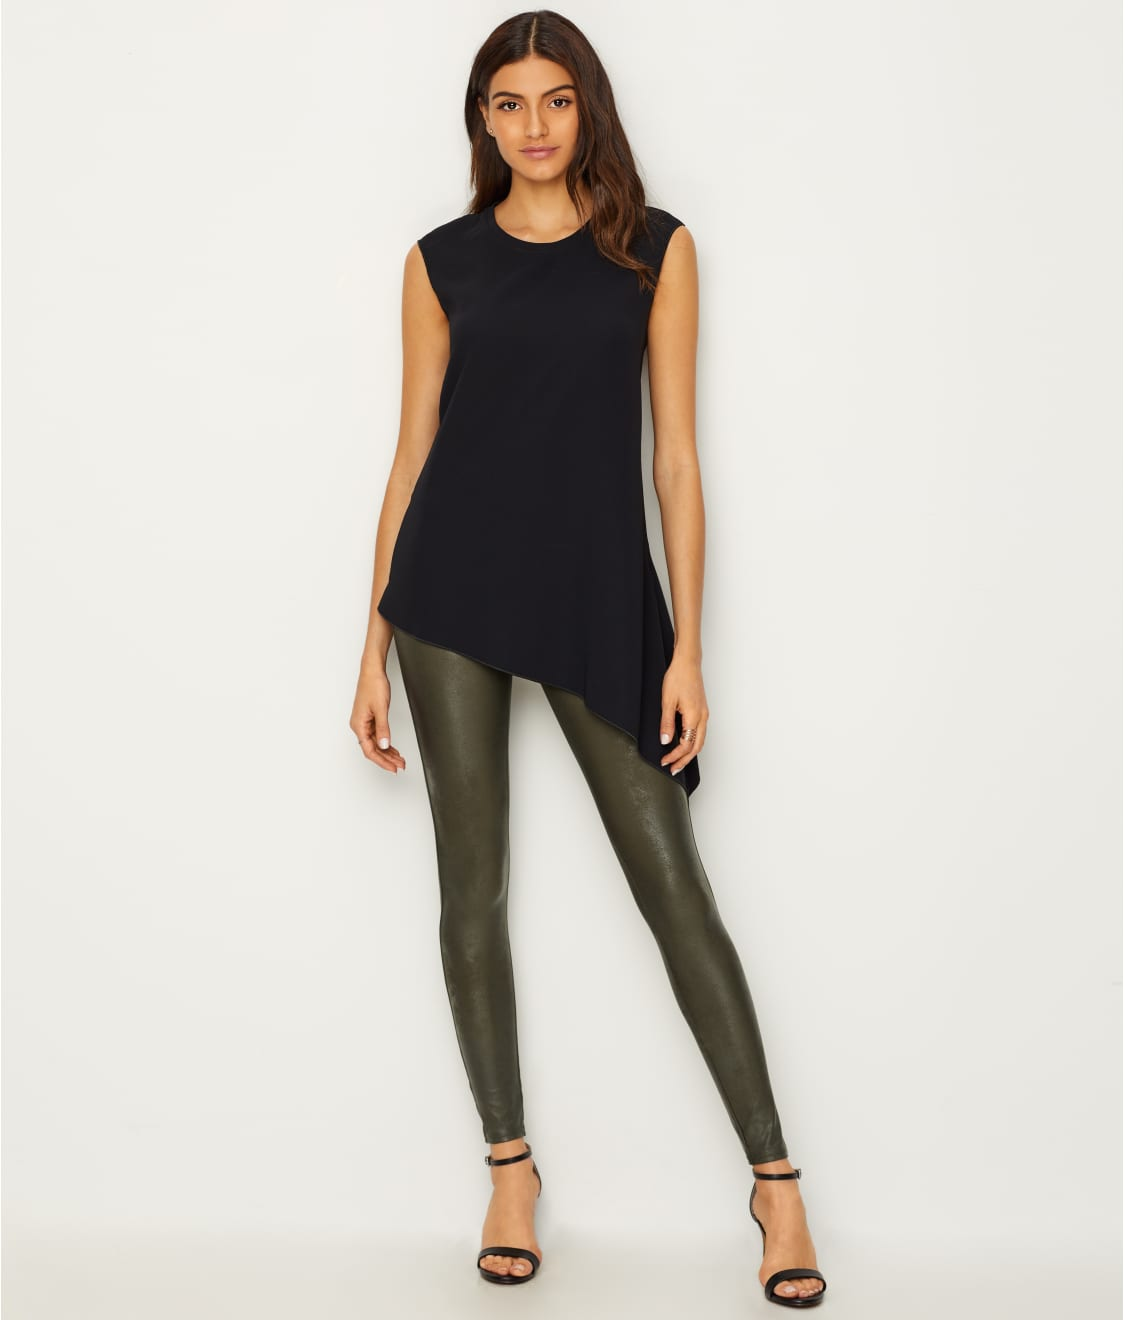 b7f744765cd See Ready-to-Wow Faux Leather Leggings in Rich Olive